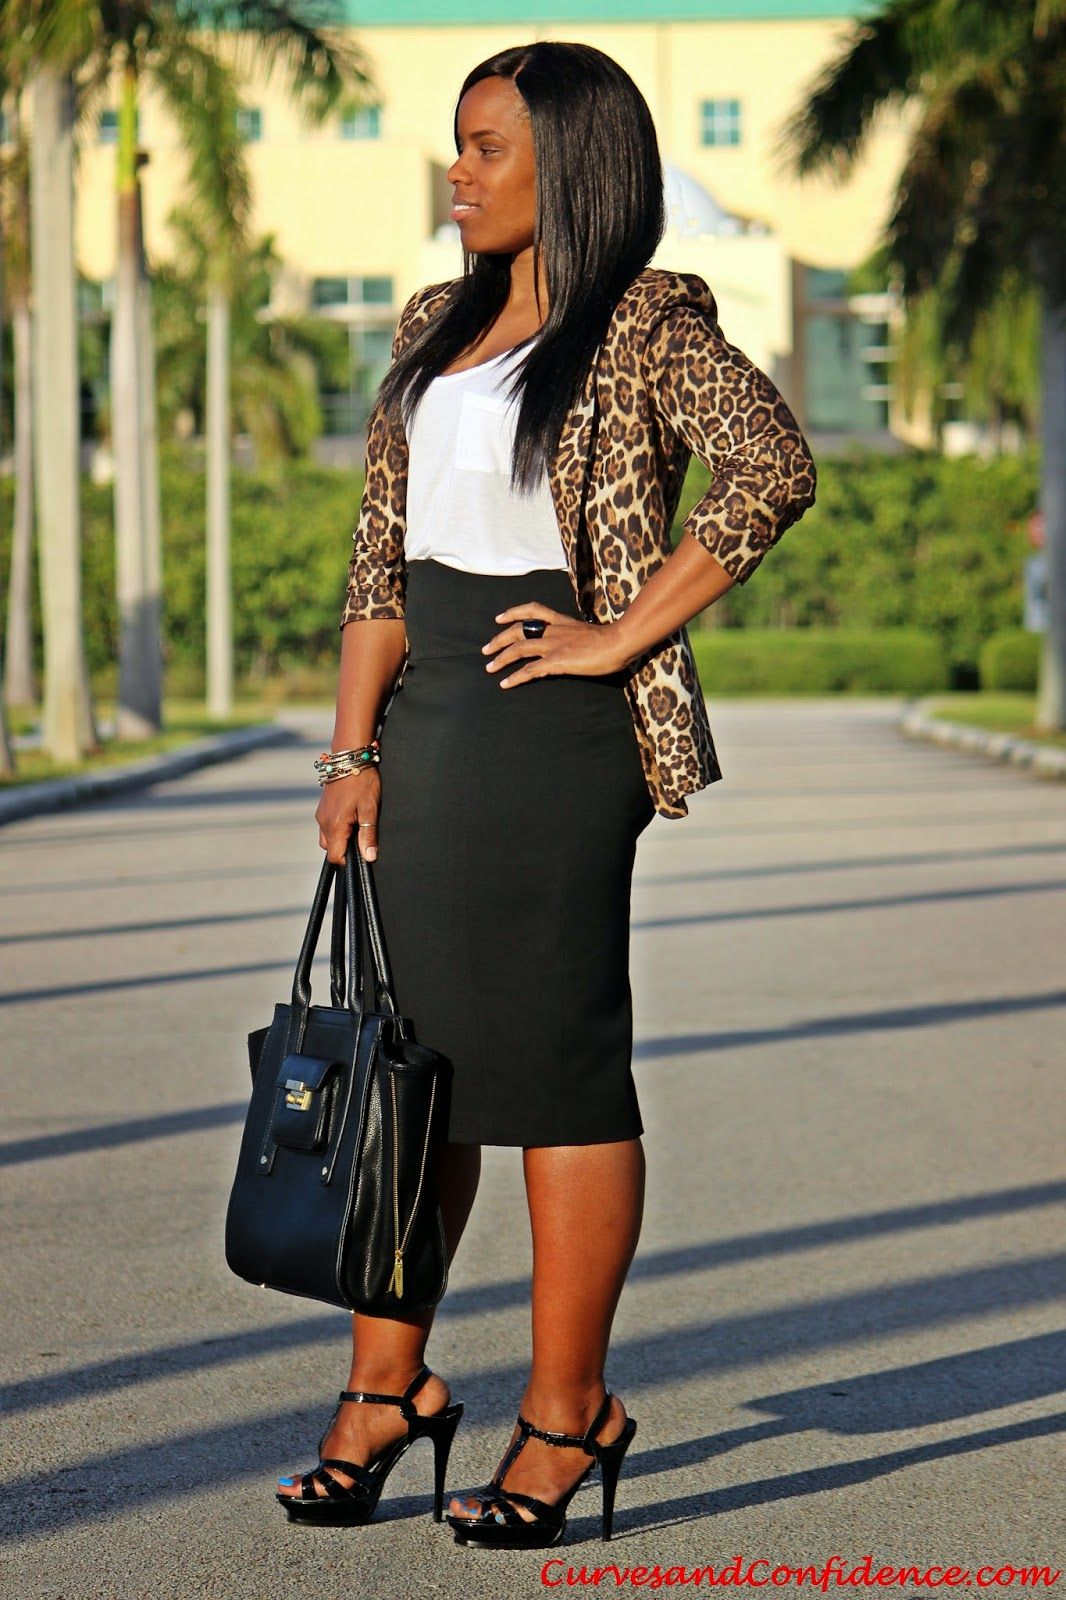 Black Amp Leopard Curves Confidence Fashion Casual Work